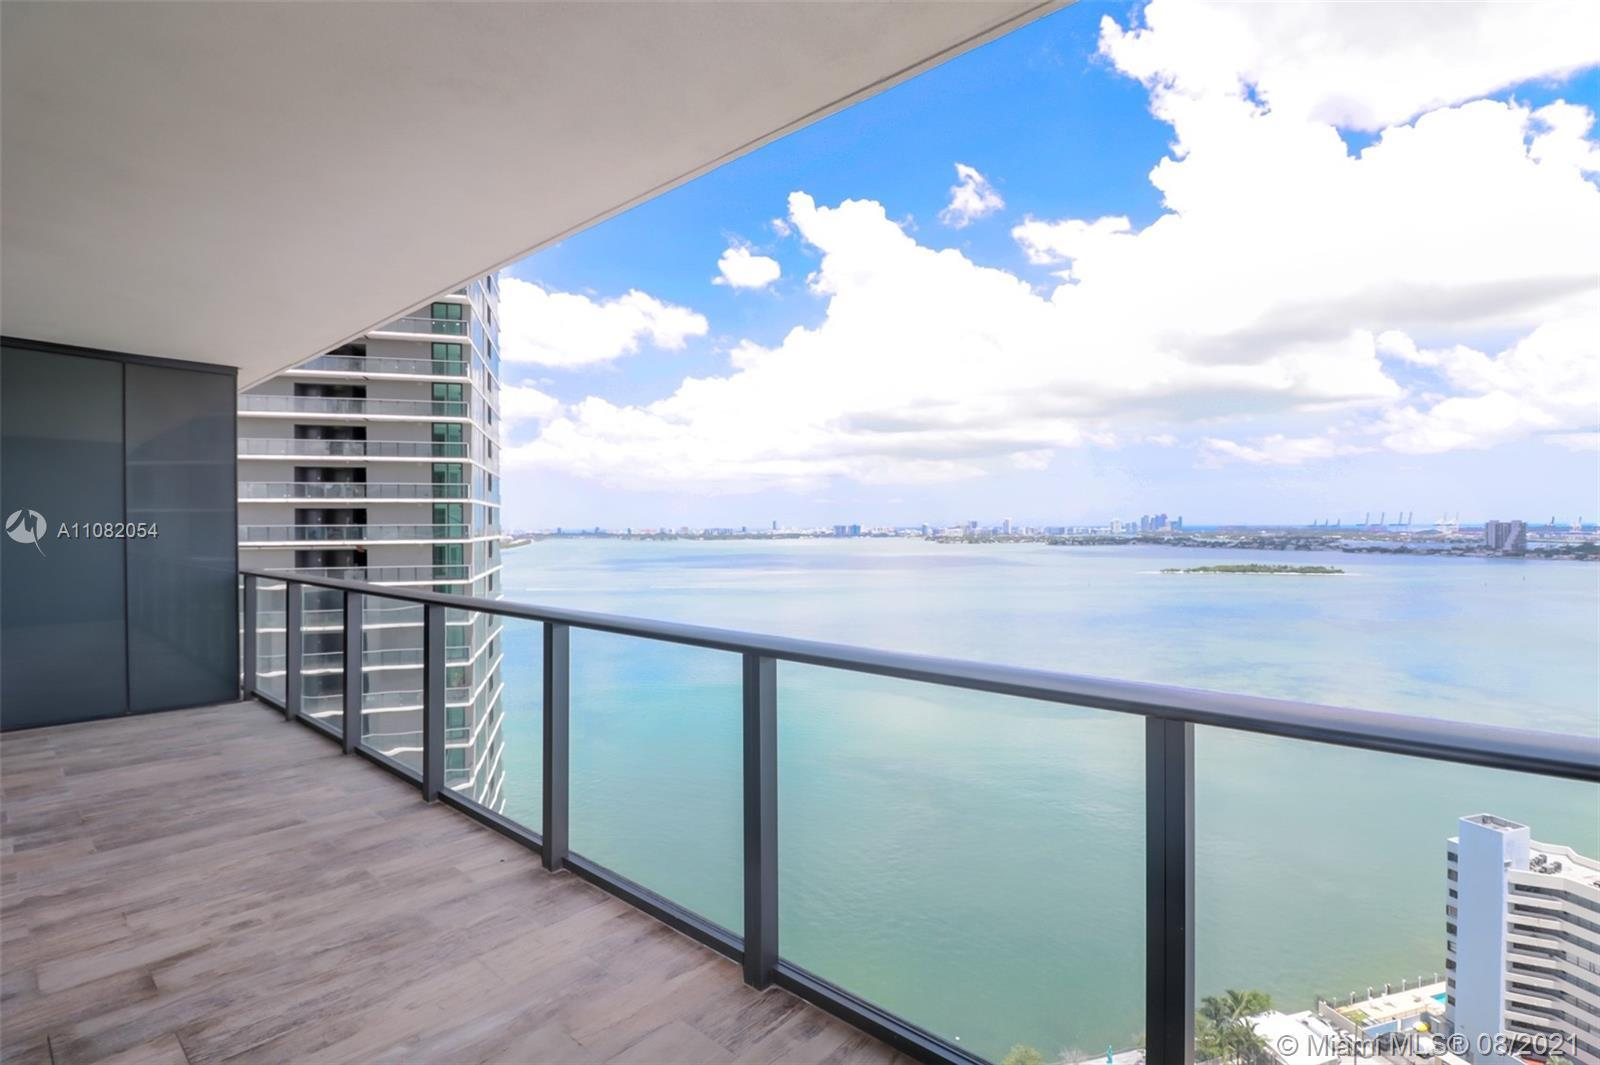 PARAISO BAY - FURNISHED 2 Bedroom 3 Bath Plus Den apartment with Direct Breathtaking Water Views! Wo